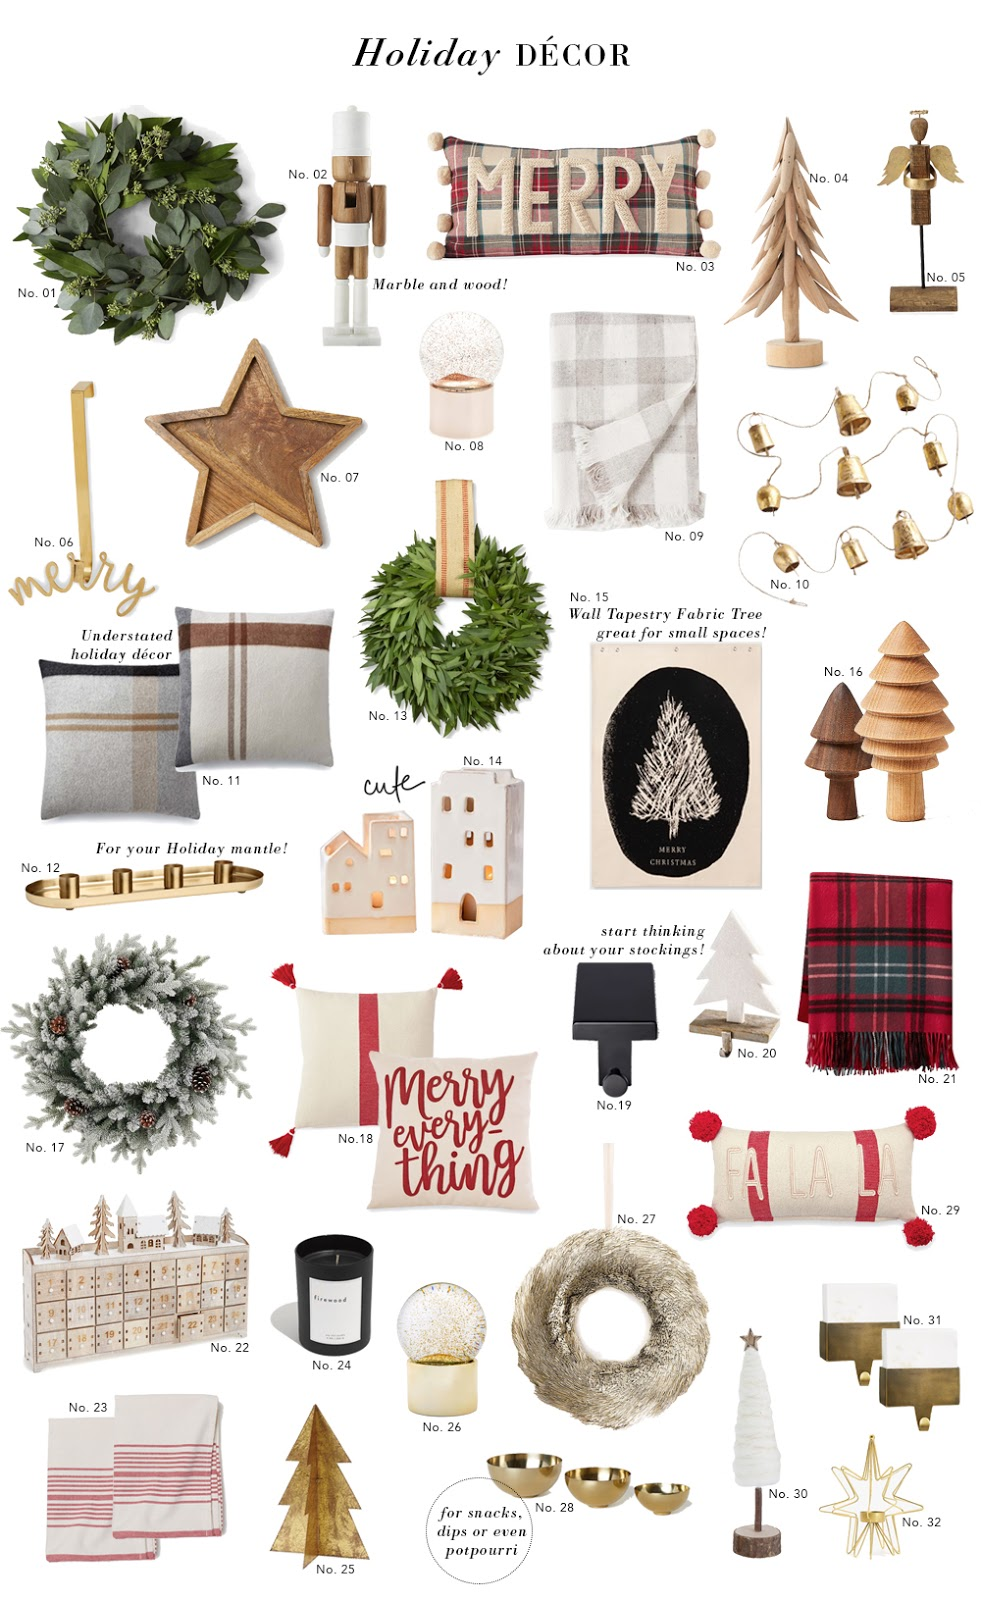 Decor & Interiors File: 32 Holiday Décor Items To Get You Into the Spirit of the Season